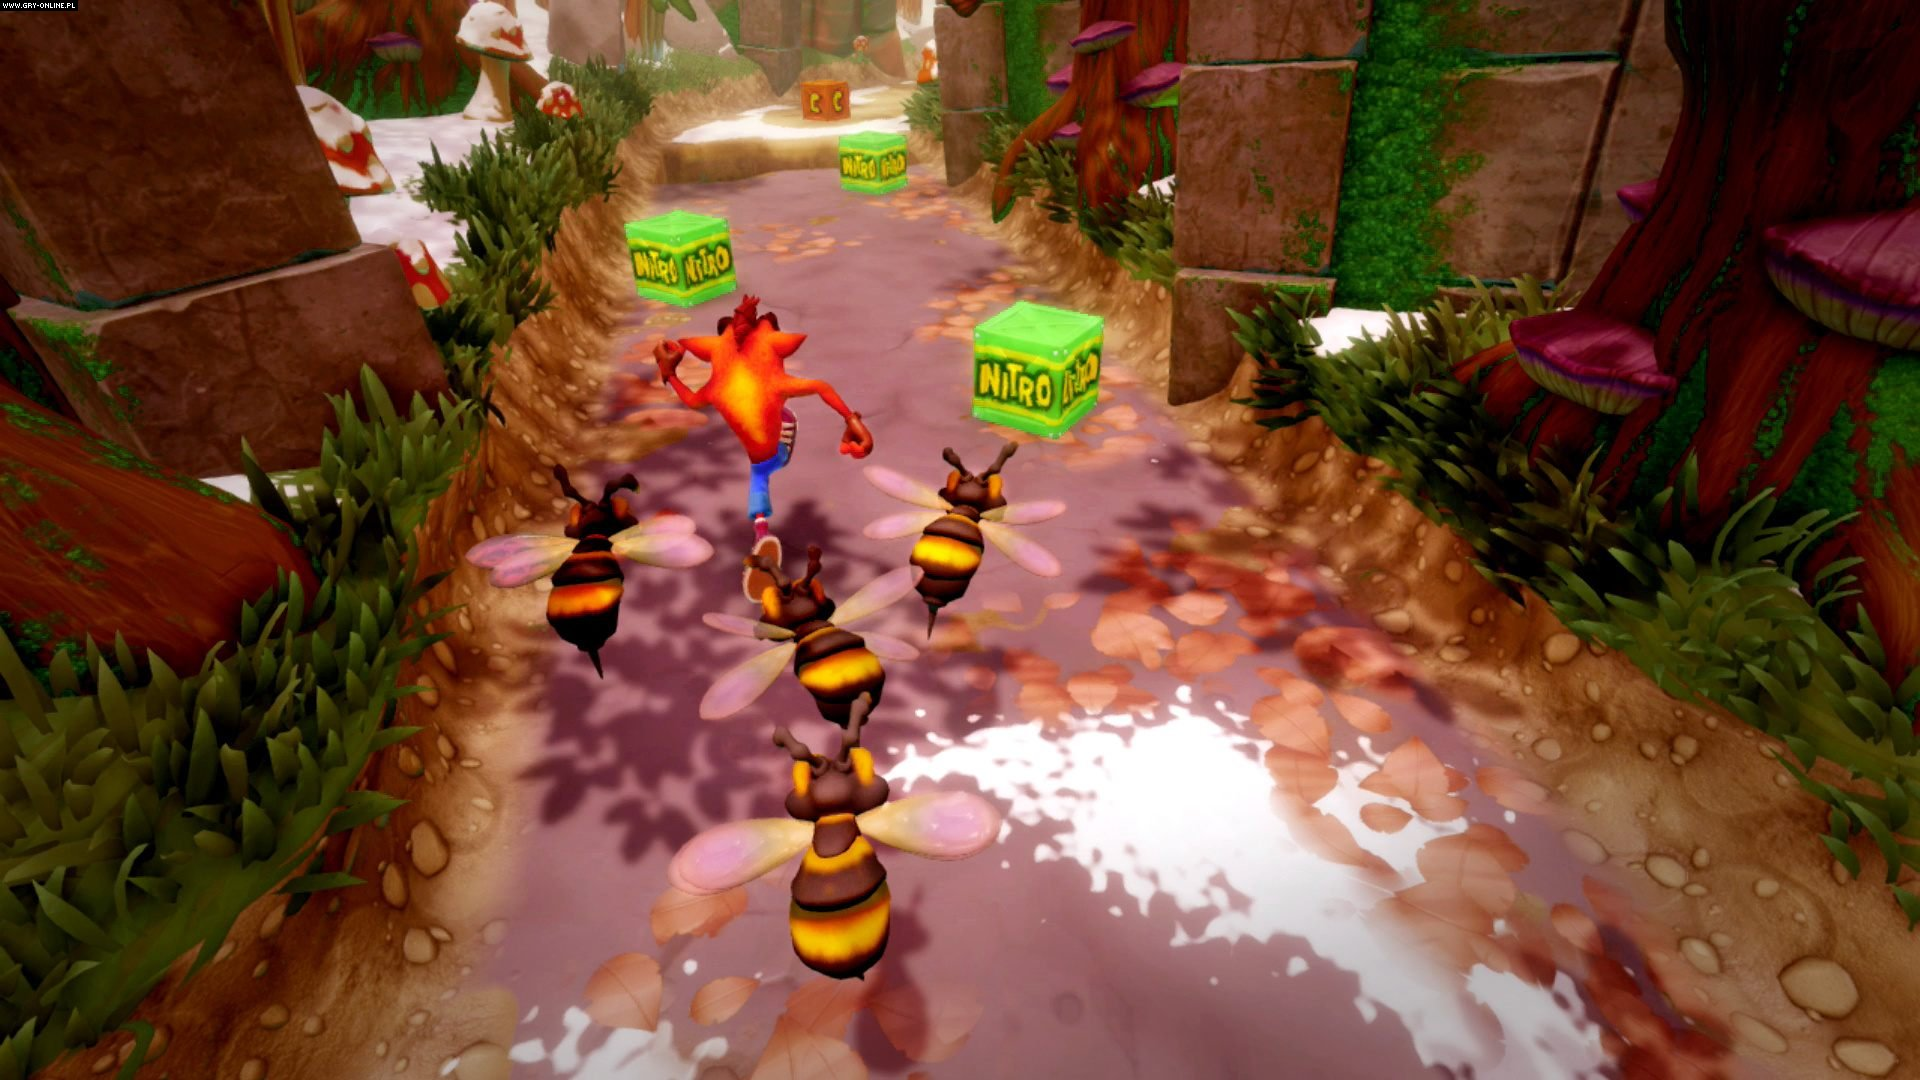 Crash Bandicoot N. Sane Trilogy PC, PS4, XONE, Switch Gry Screen 12/115, Vicarious Visions, Activision Blizzard